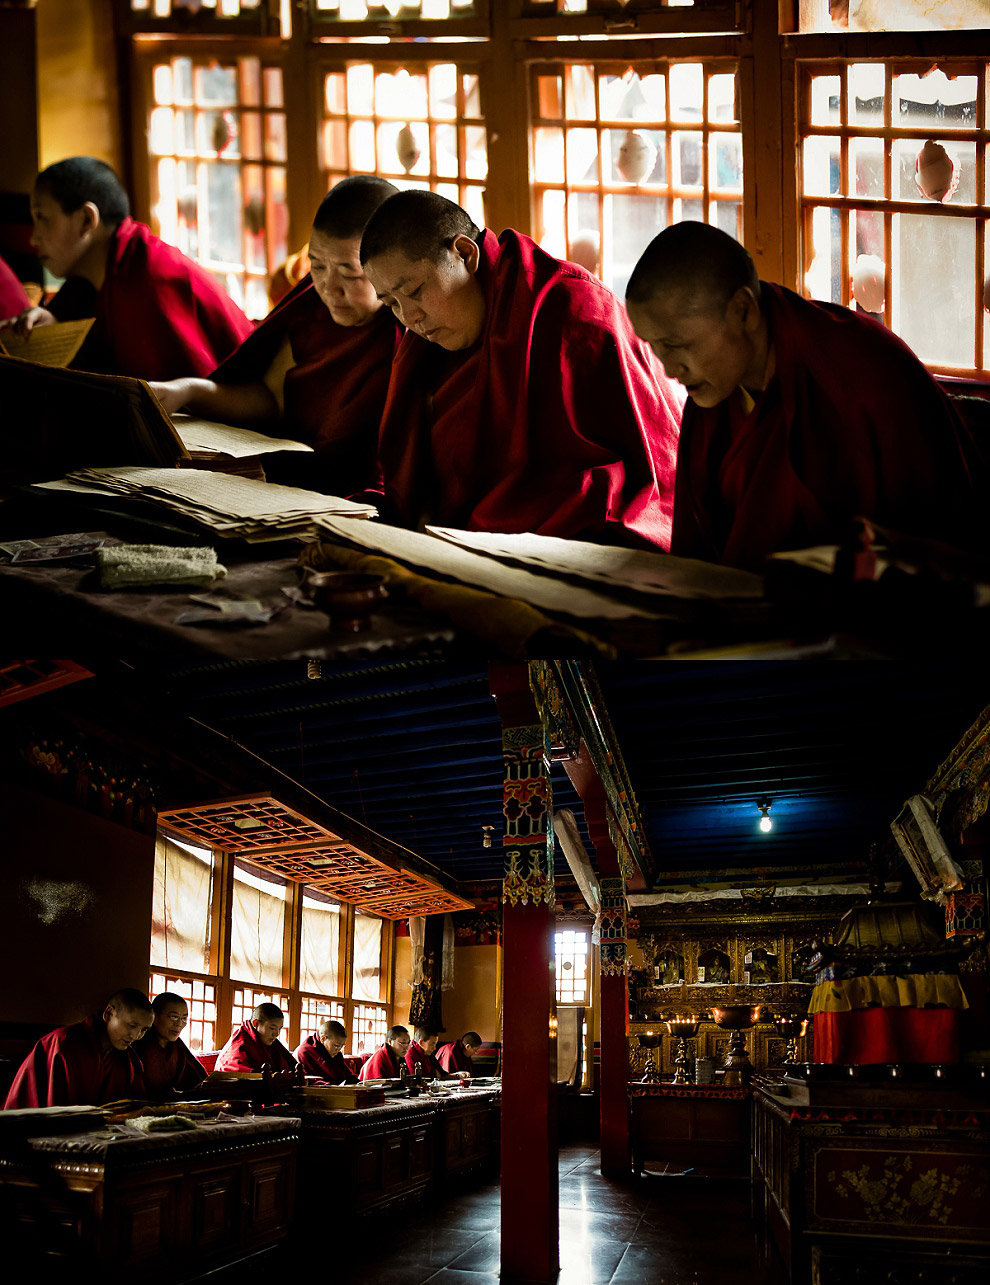 monks reading ancient scrolls and books in library